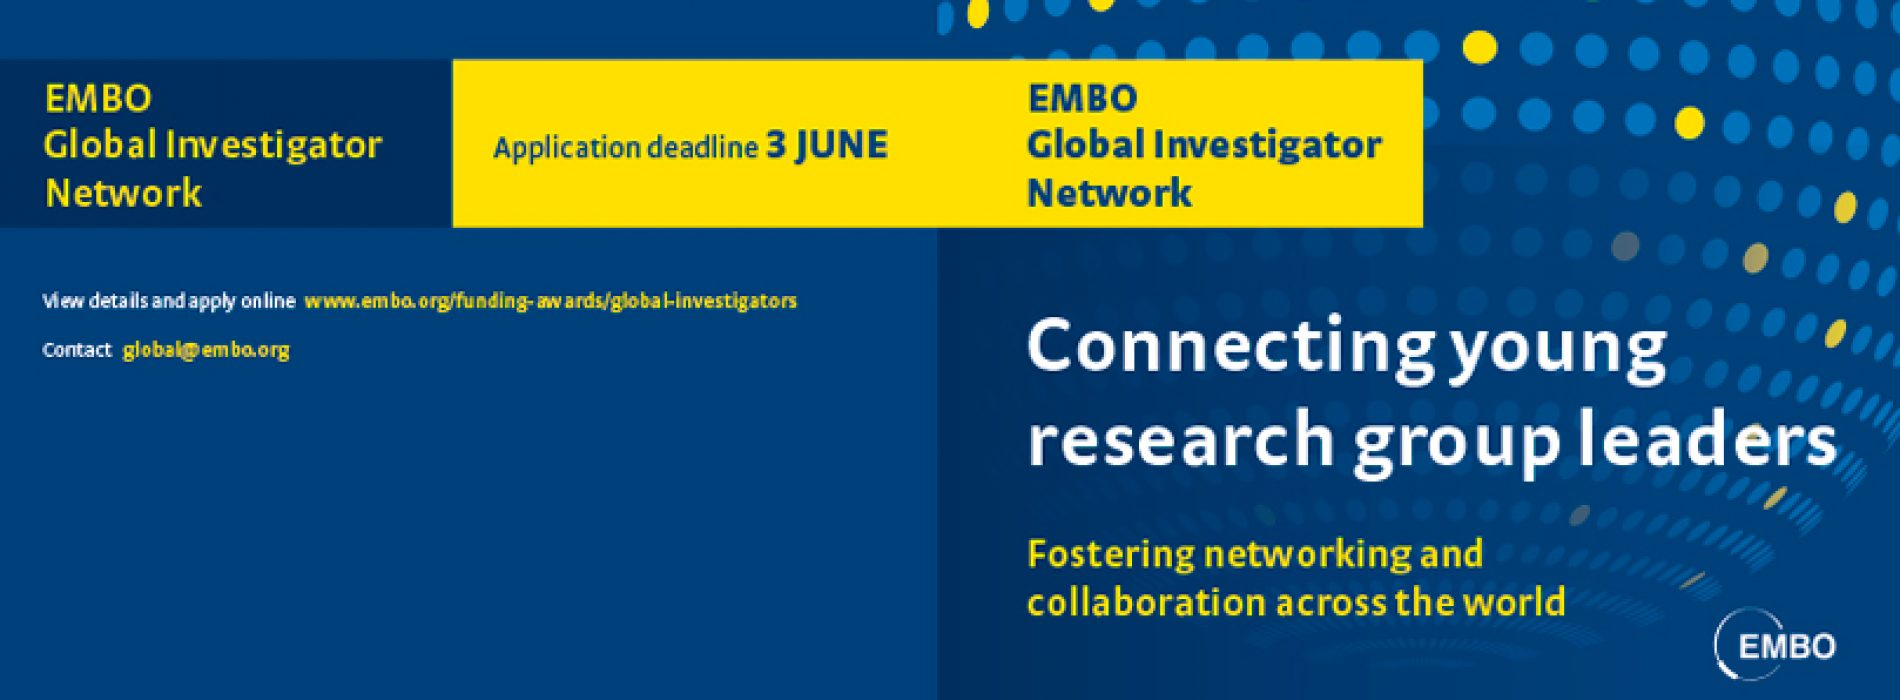 EMBO Global Investigator Network – Applications open!